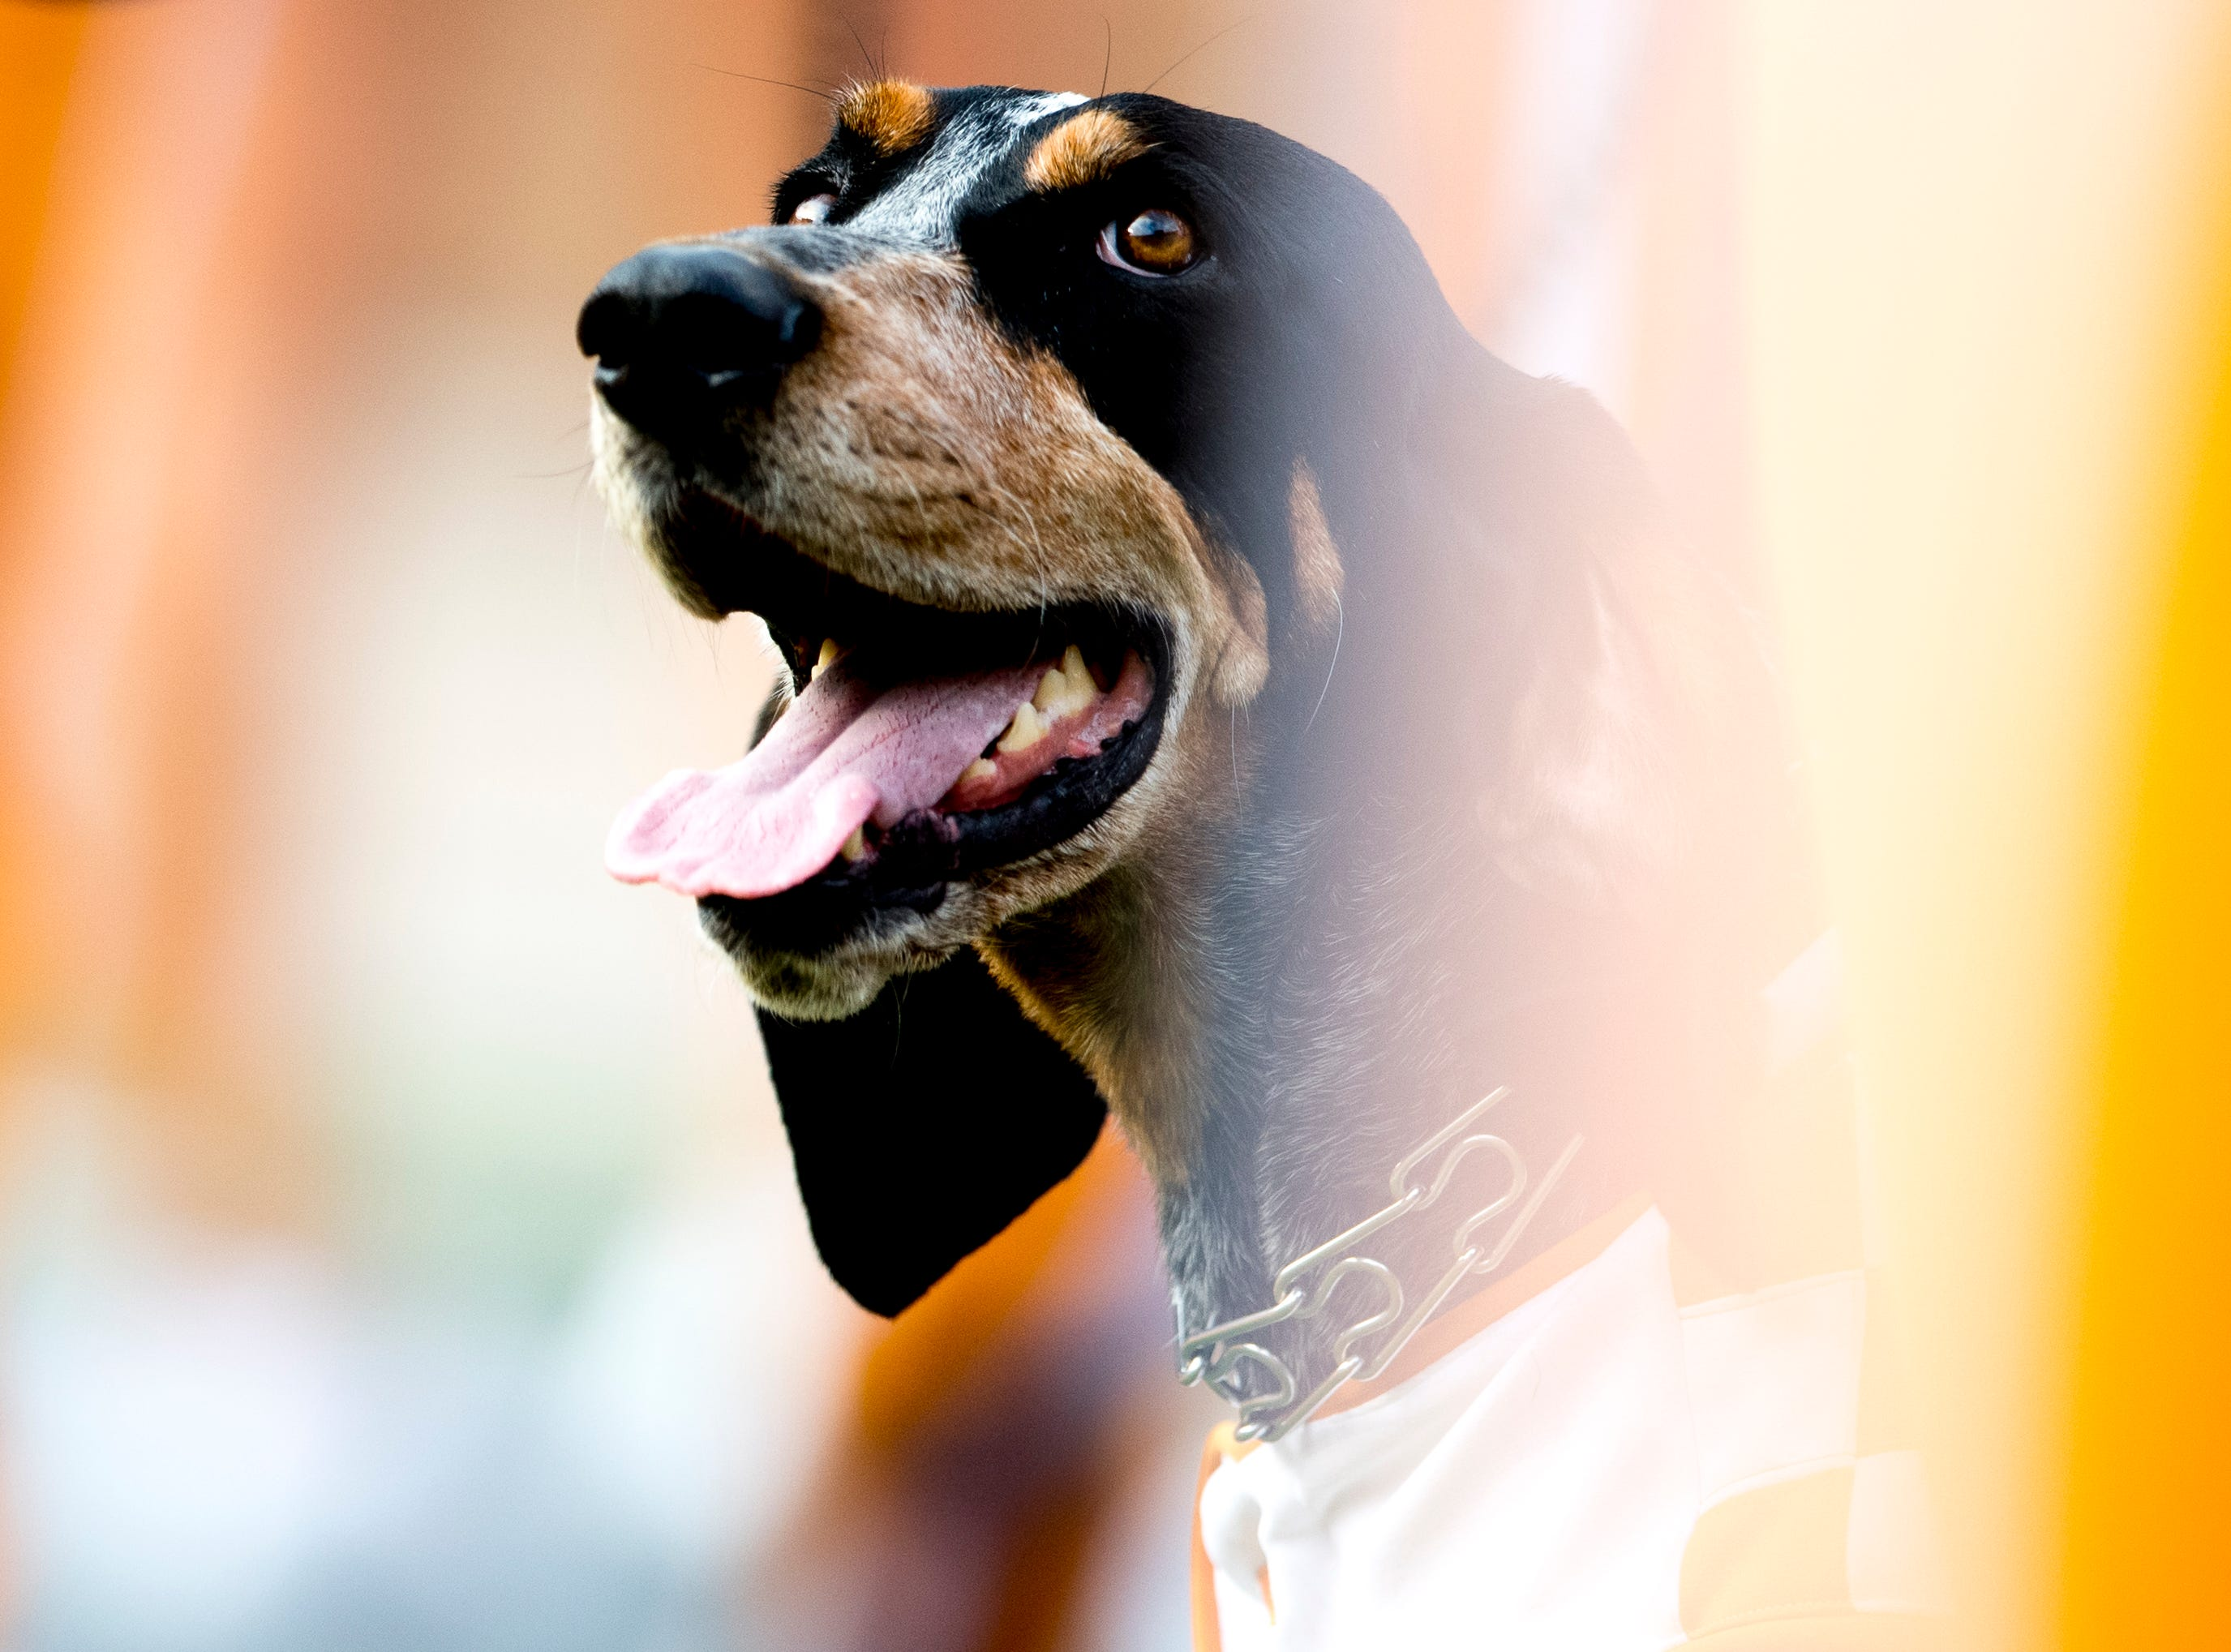 Smokey watches the game action from the sidelines during a game between Tennessee and ETSU at Neyland Stadium in Knoxville, Tennessee on Saturday, September 8, 2018.